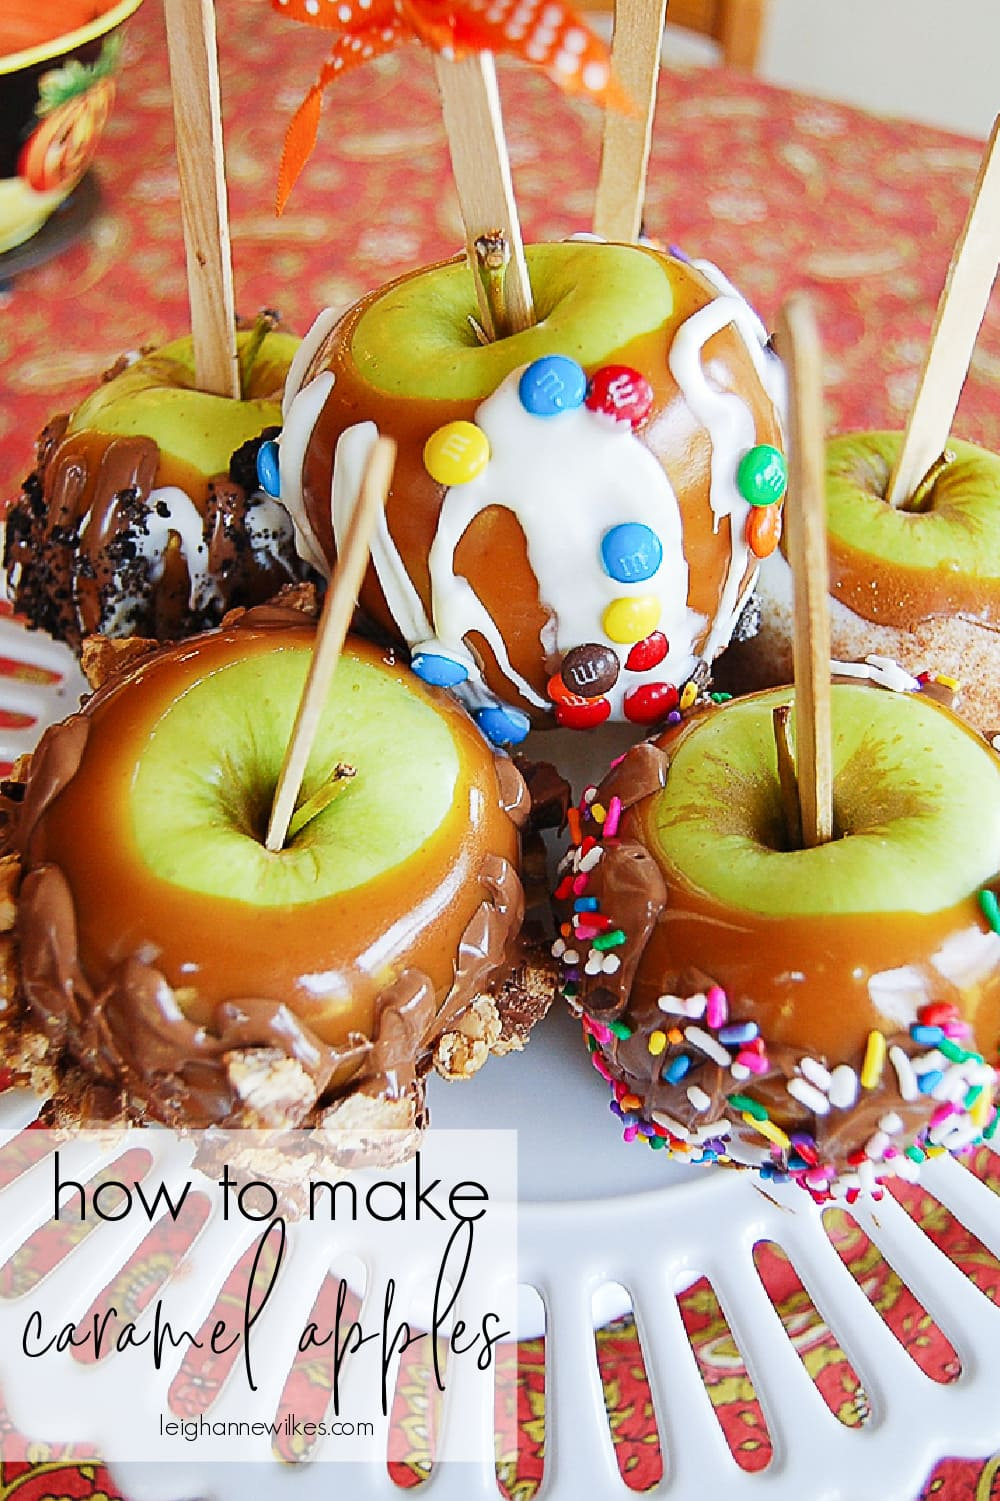 How To Make Caramel Apples Leigh Anne Wilkes